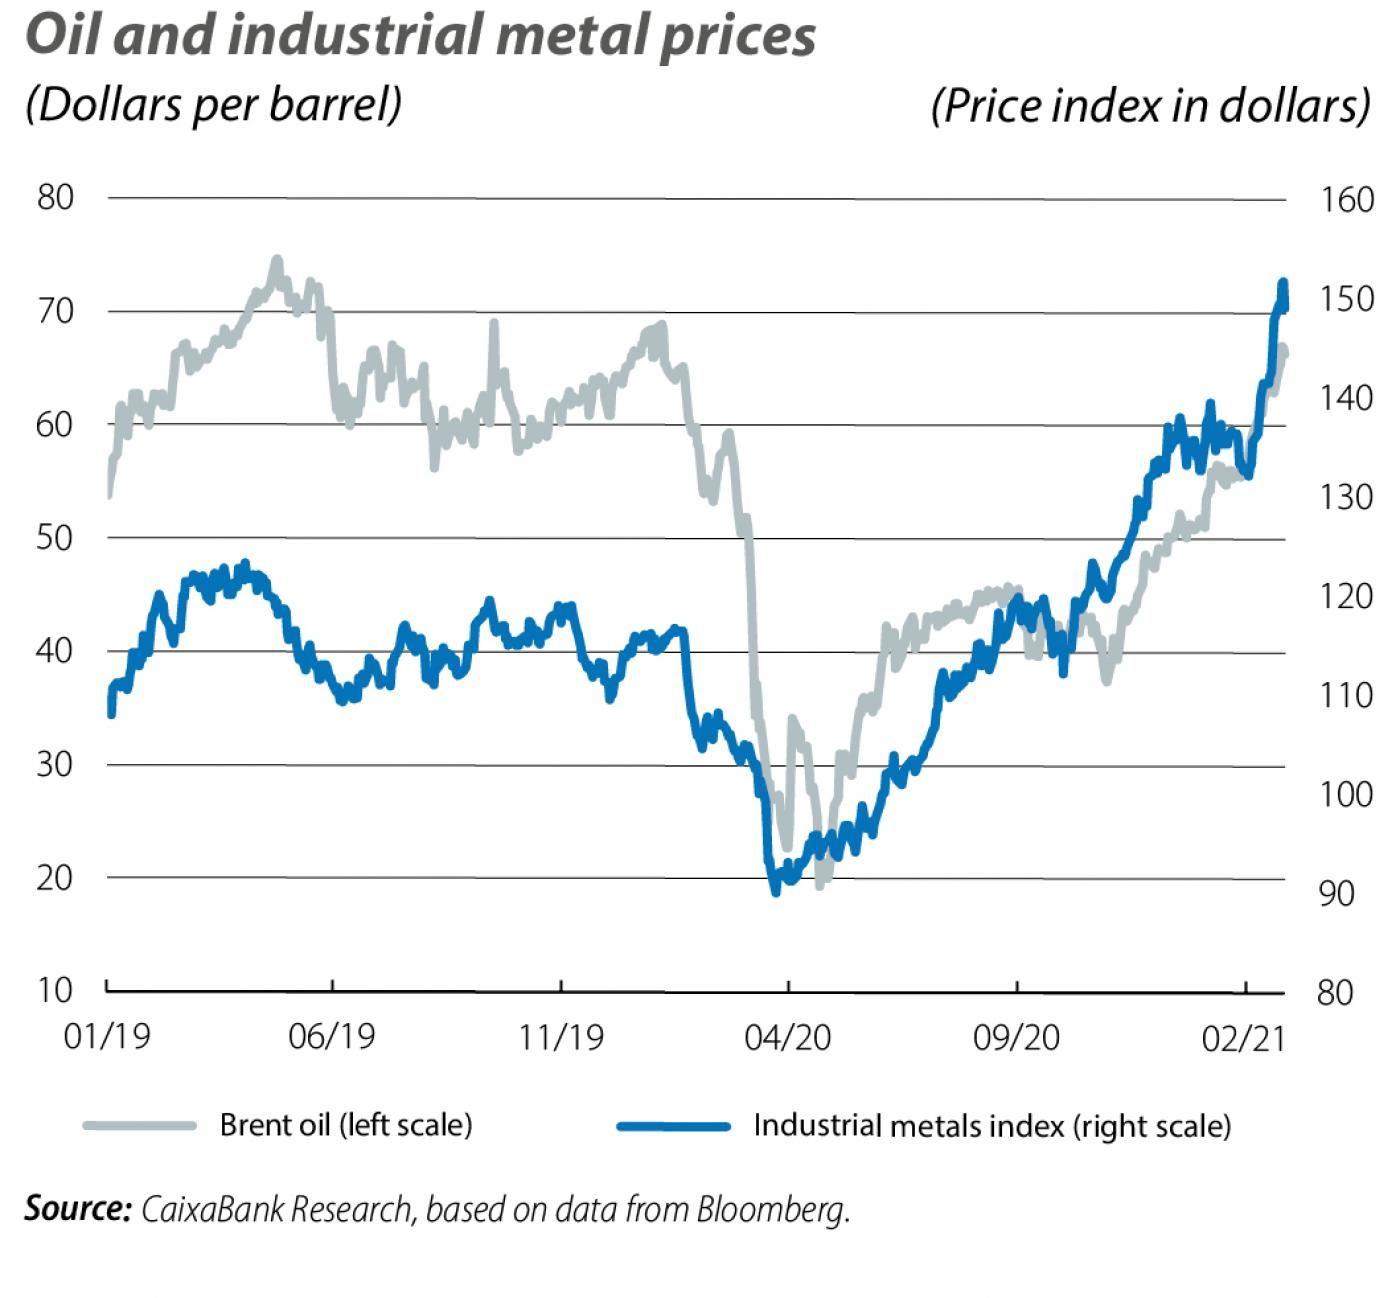 Oil and industrial metal prices